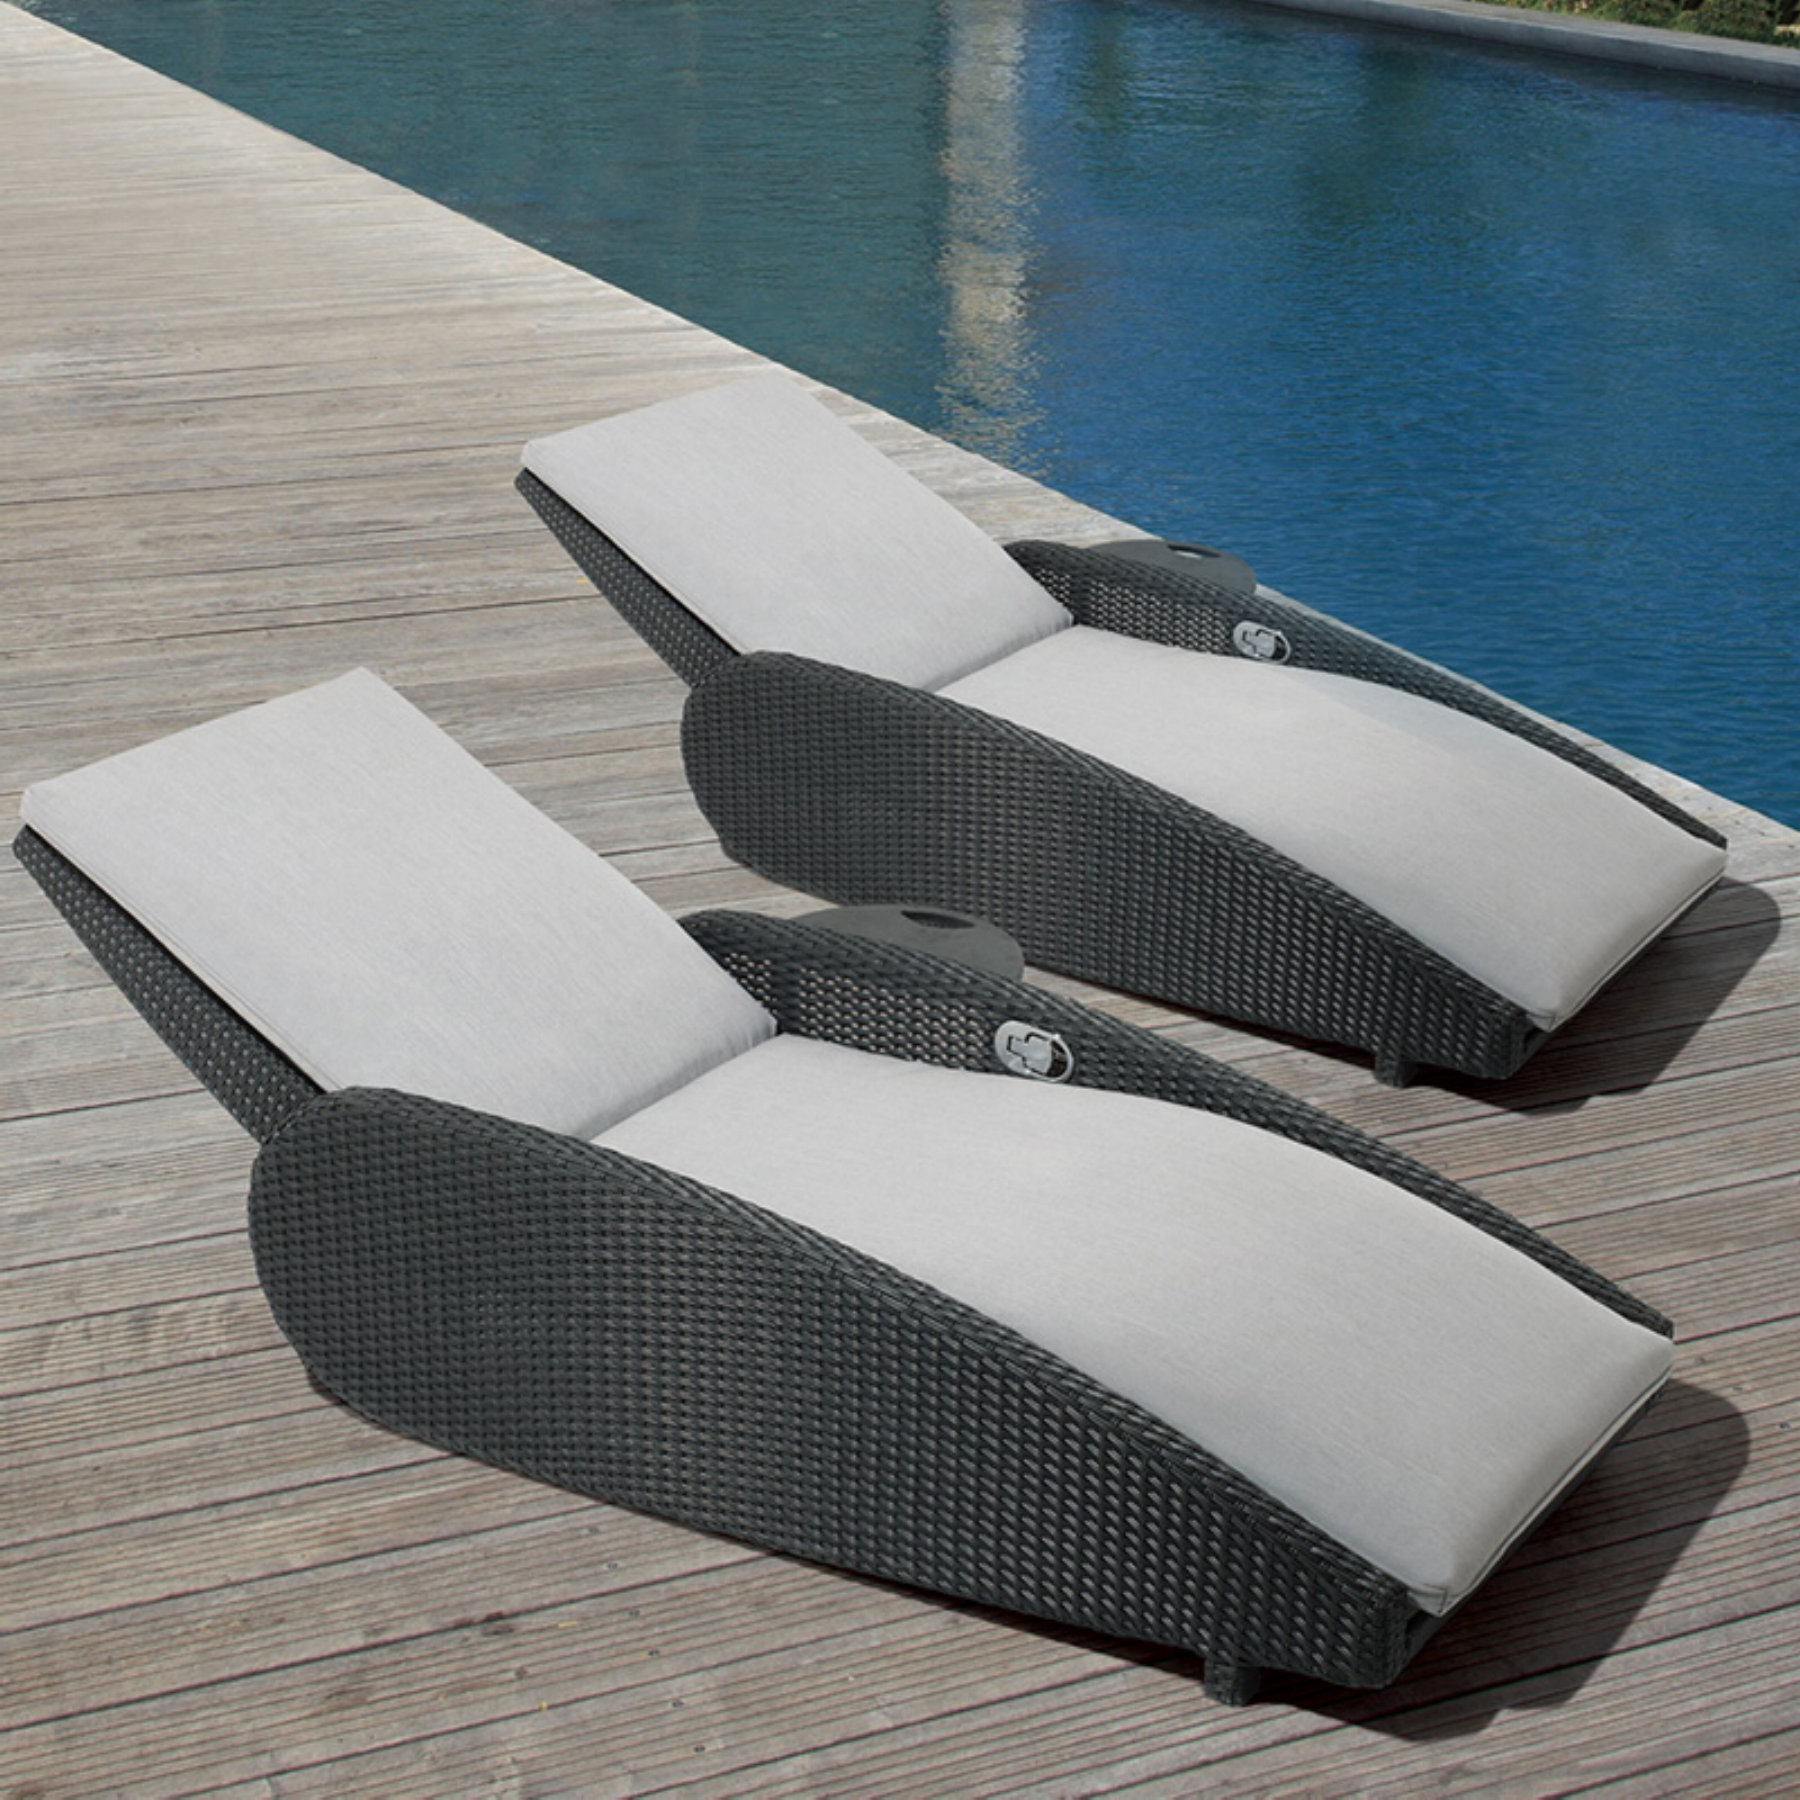 Most Recently Released Lounge Chairs In White With Grey Cushions Regarding Ove Decors Sevilla Gray Outdoor Chaise Lounge Chair – Set Of (View 18 of 25)